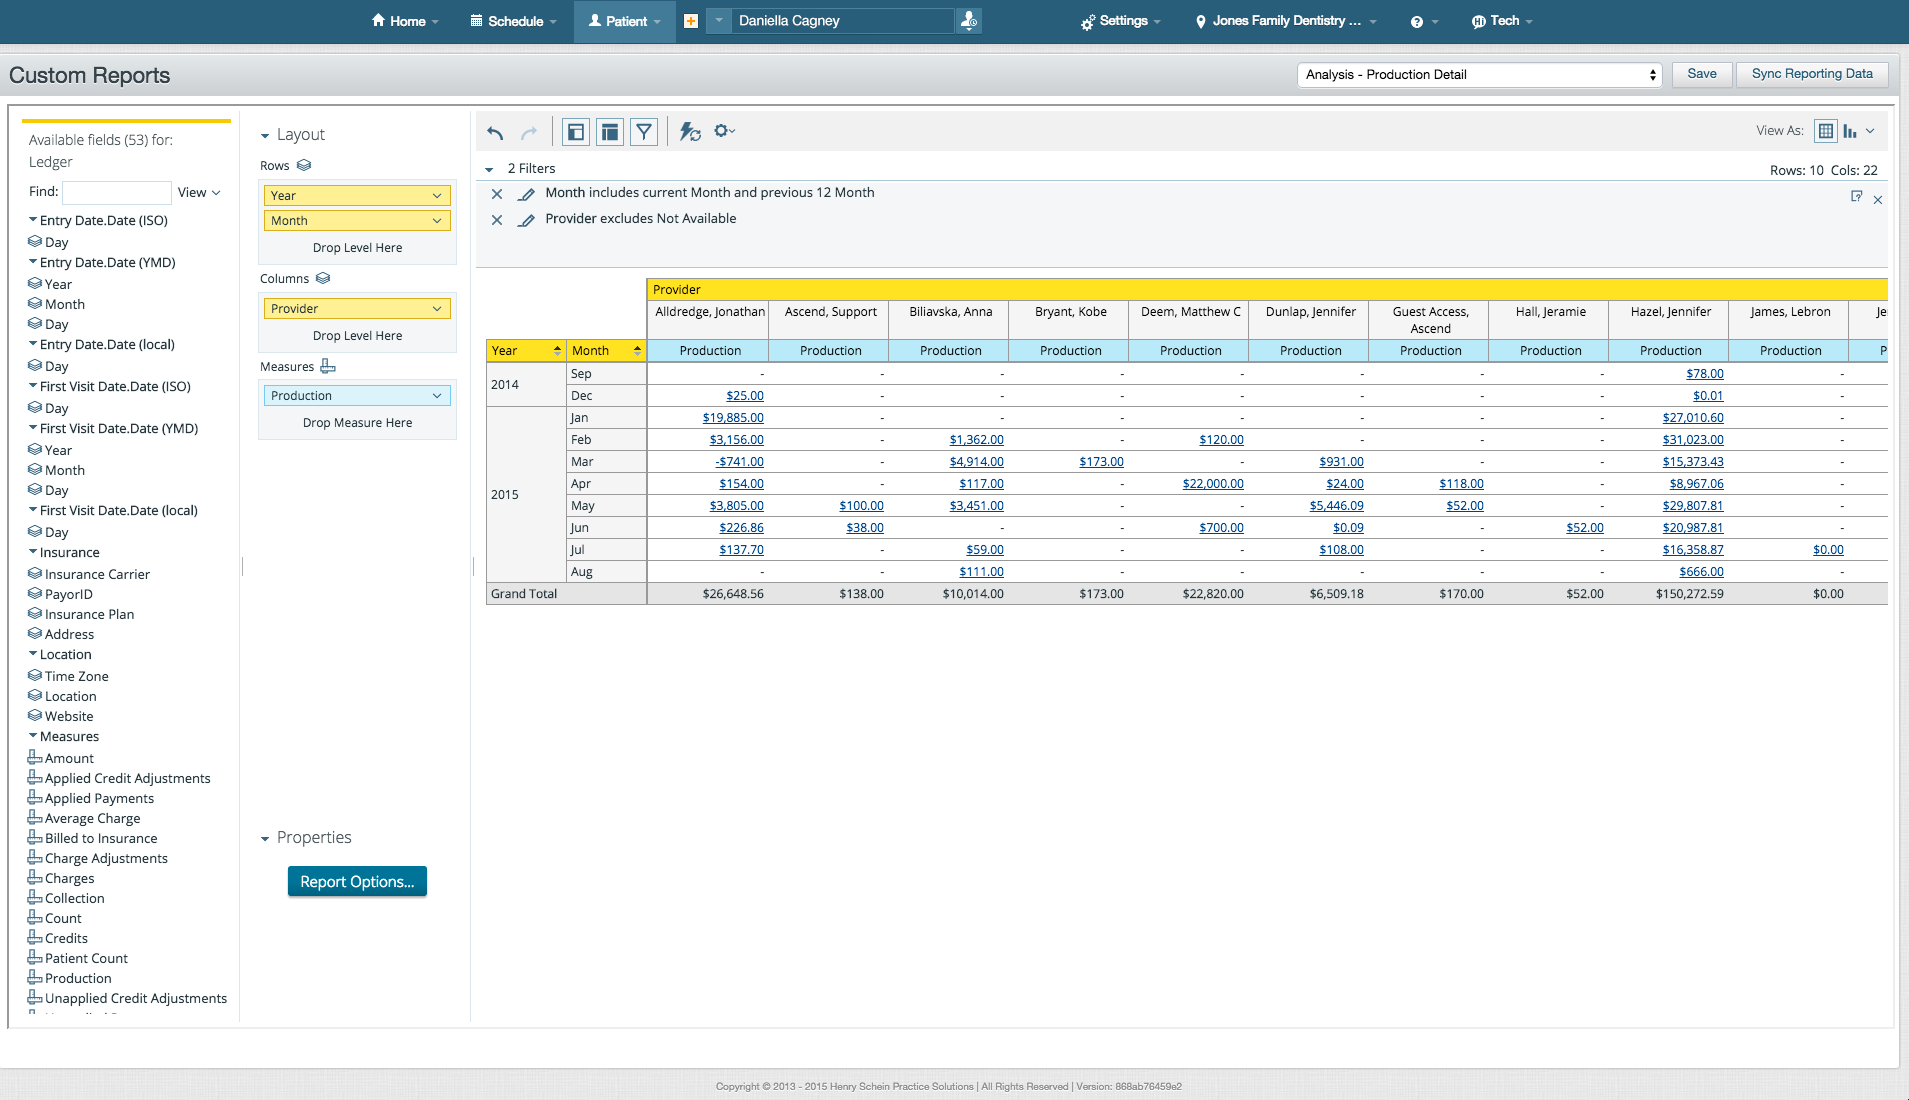 Dentrix Ascend offers users a drag-and-drop interface for custom report creation